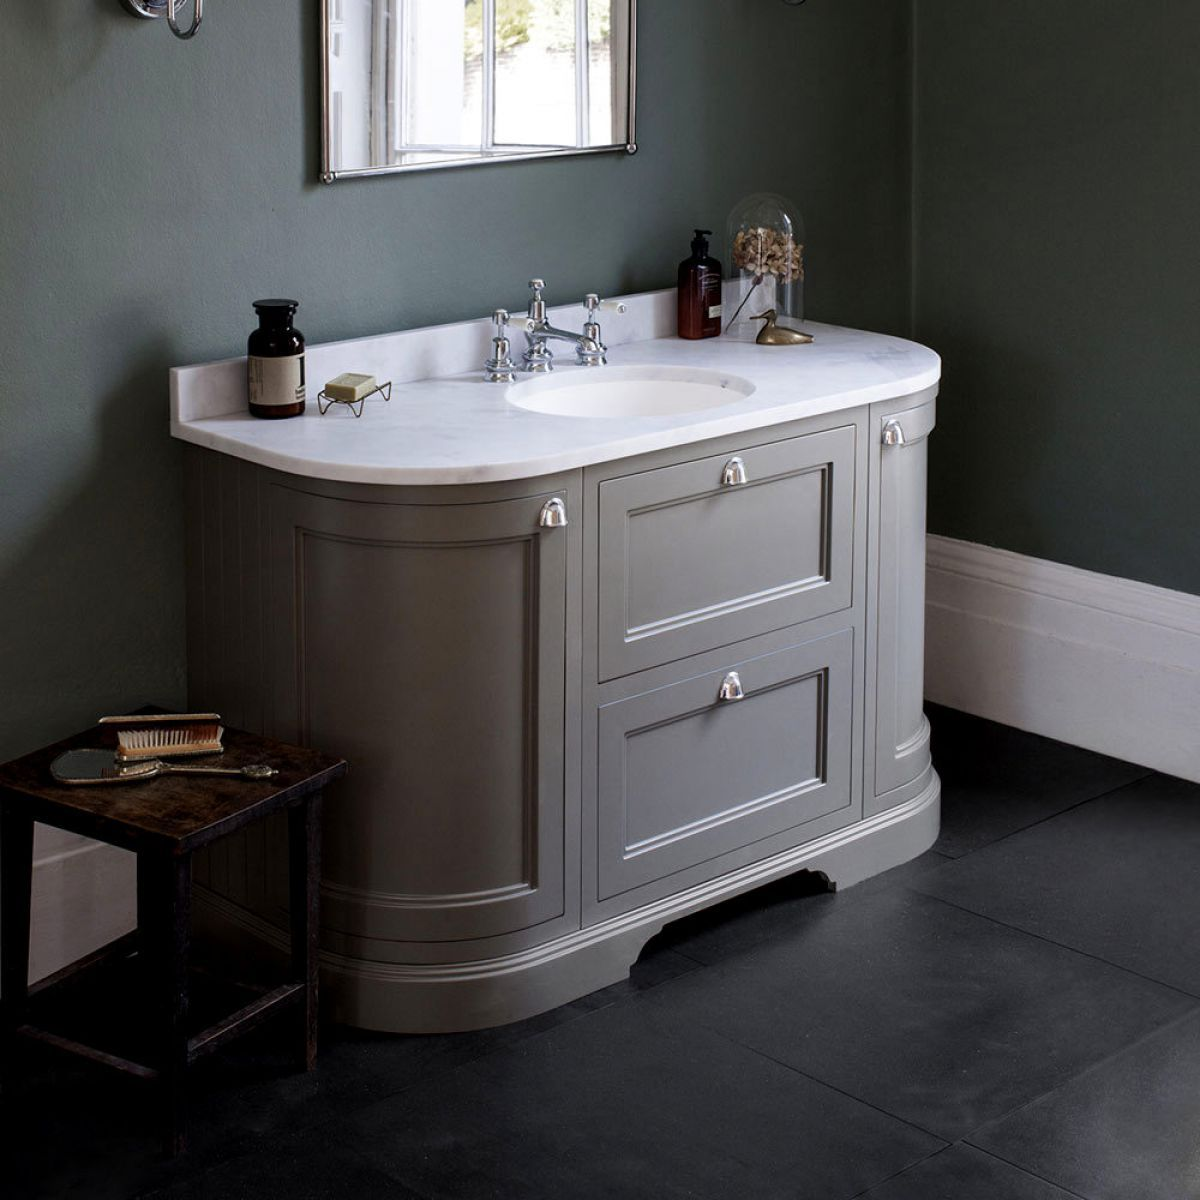 best images about bathroom sinks on pinterest vanity units